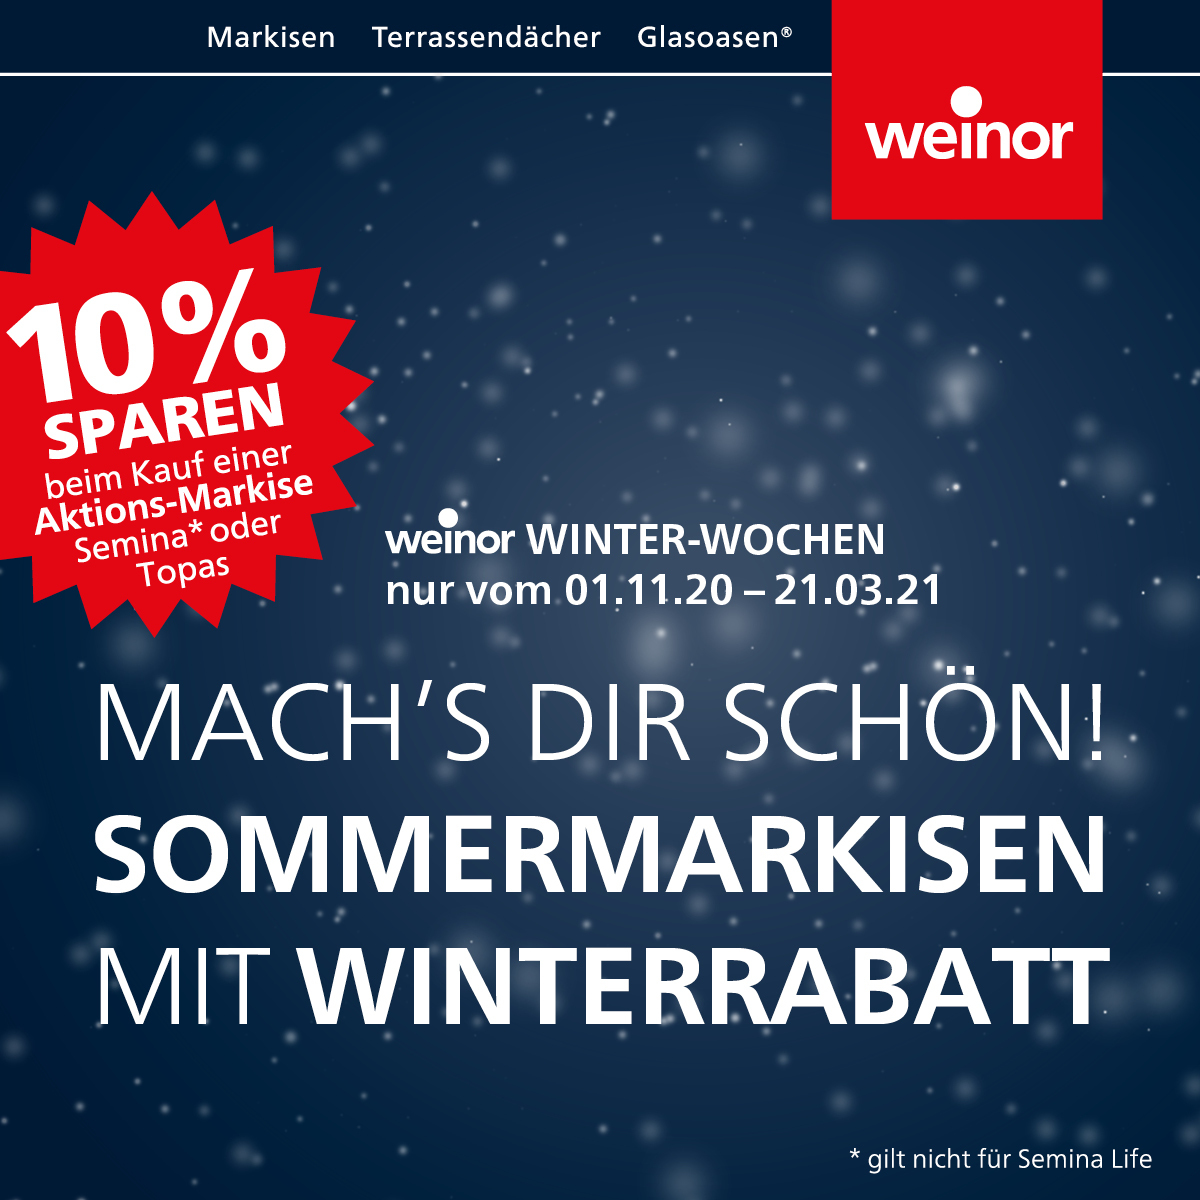 weinor Winter-Wochen.jpg